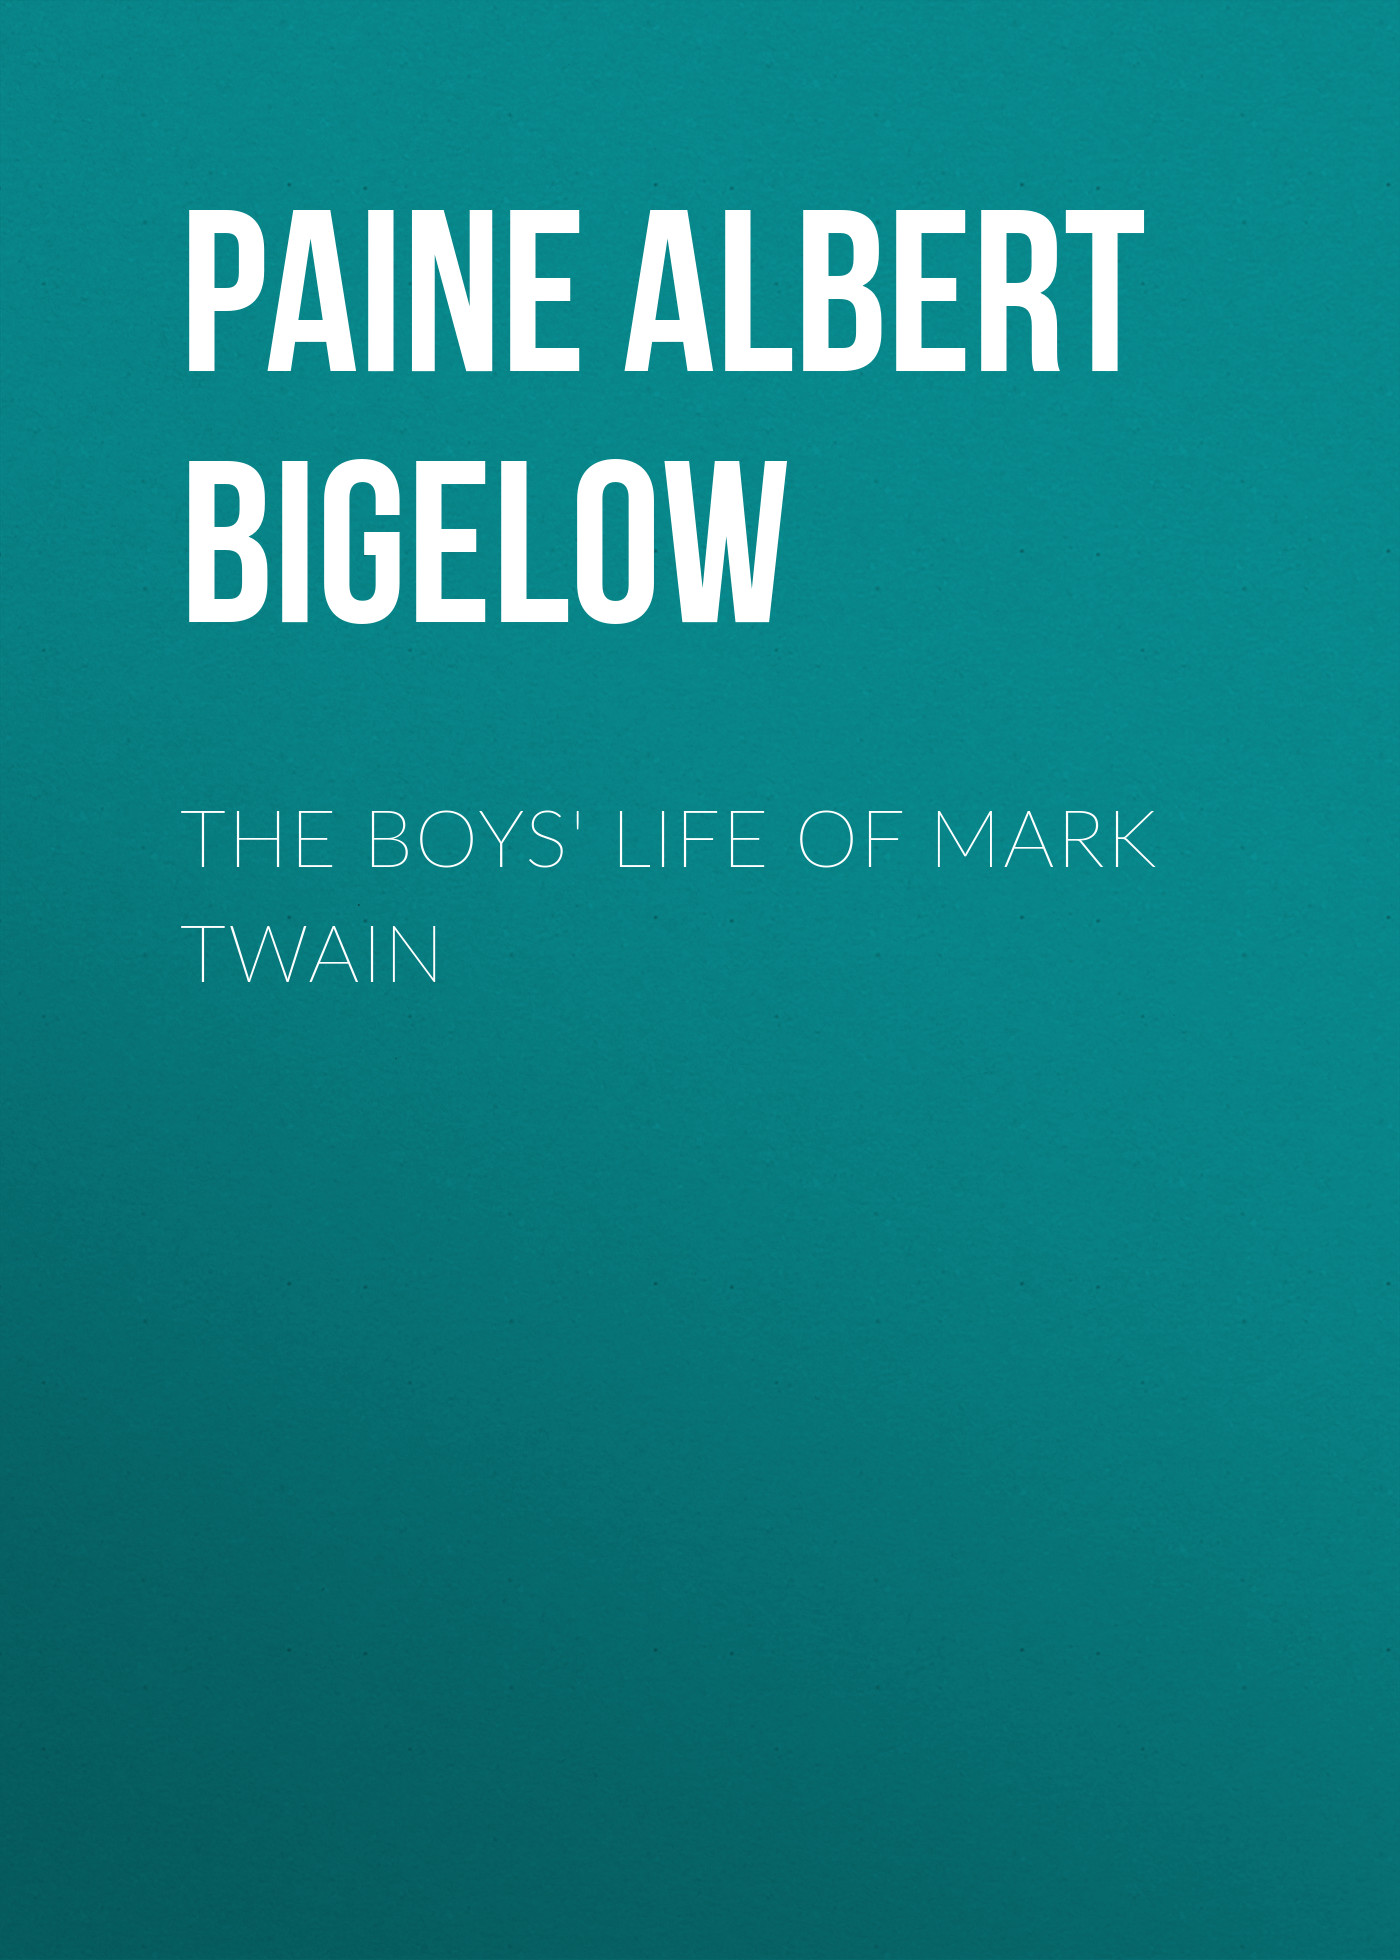 Paine Albert Bigelow The Boys' Life of Mark Twain paine albert bigelow the lucky piece a tale of the north woods